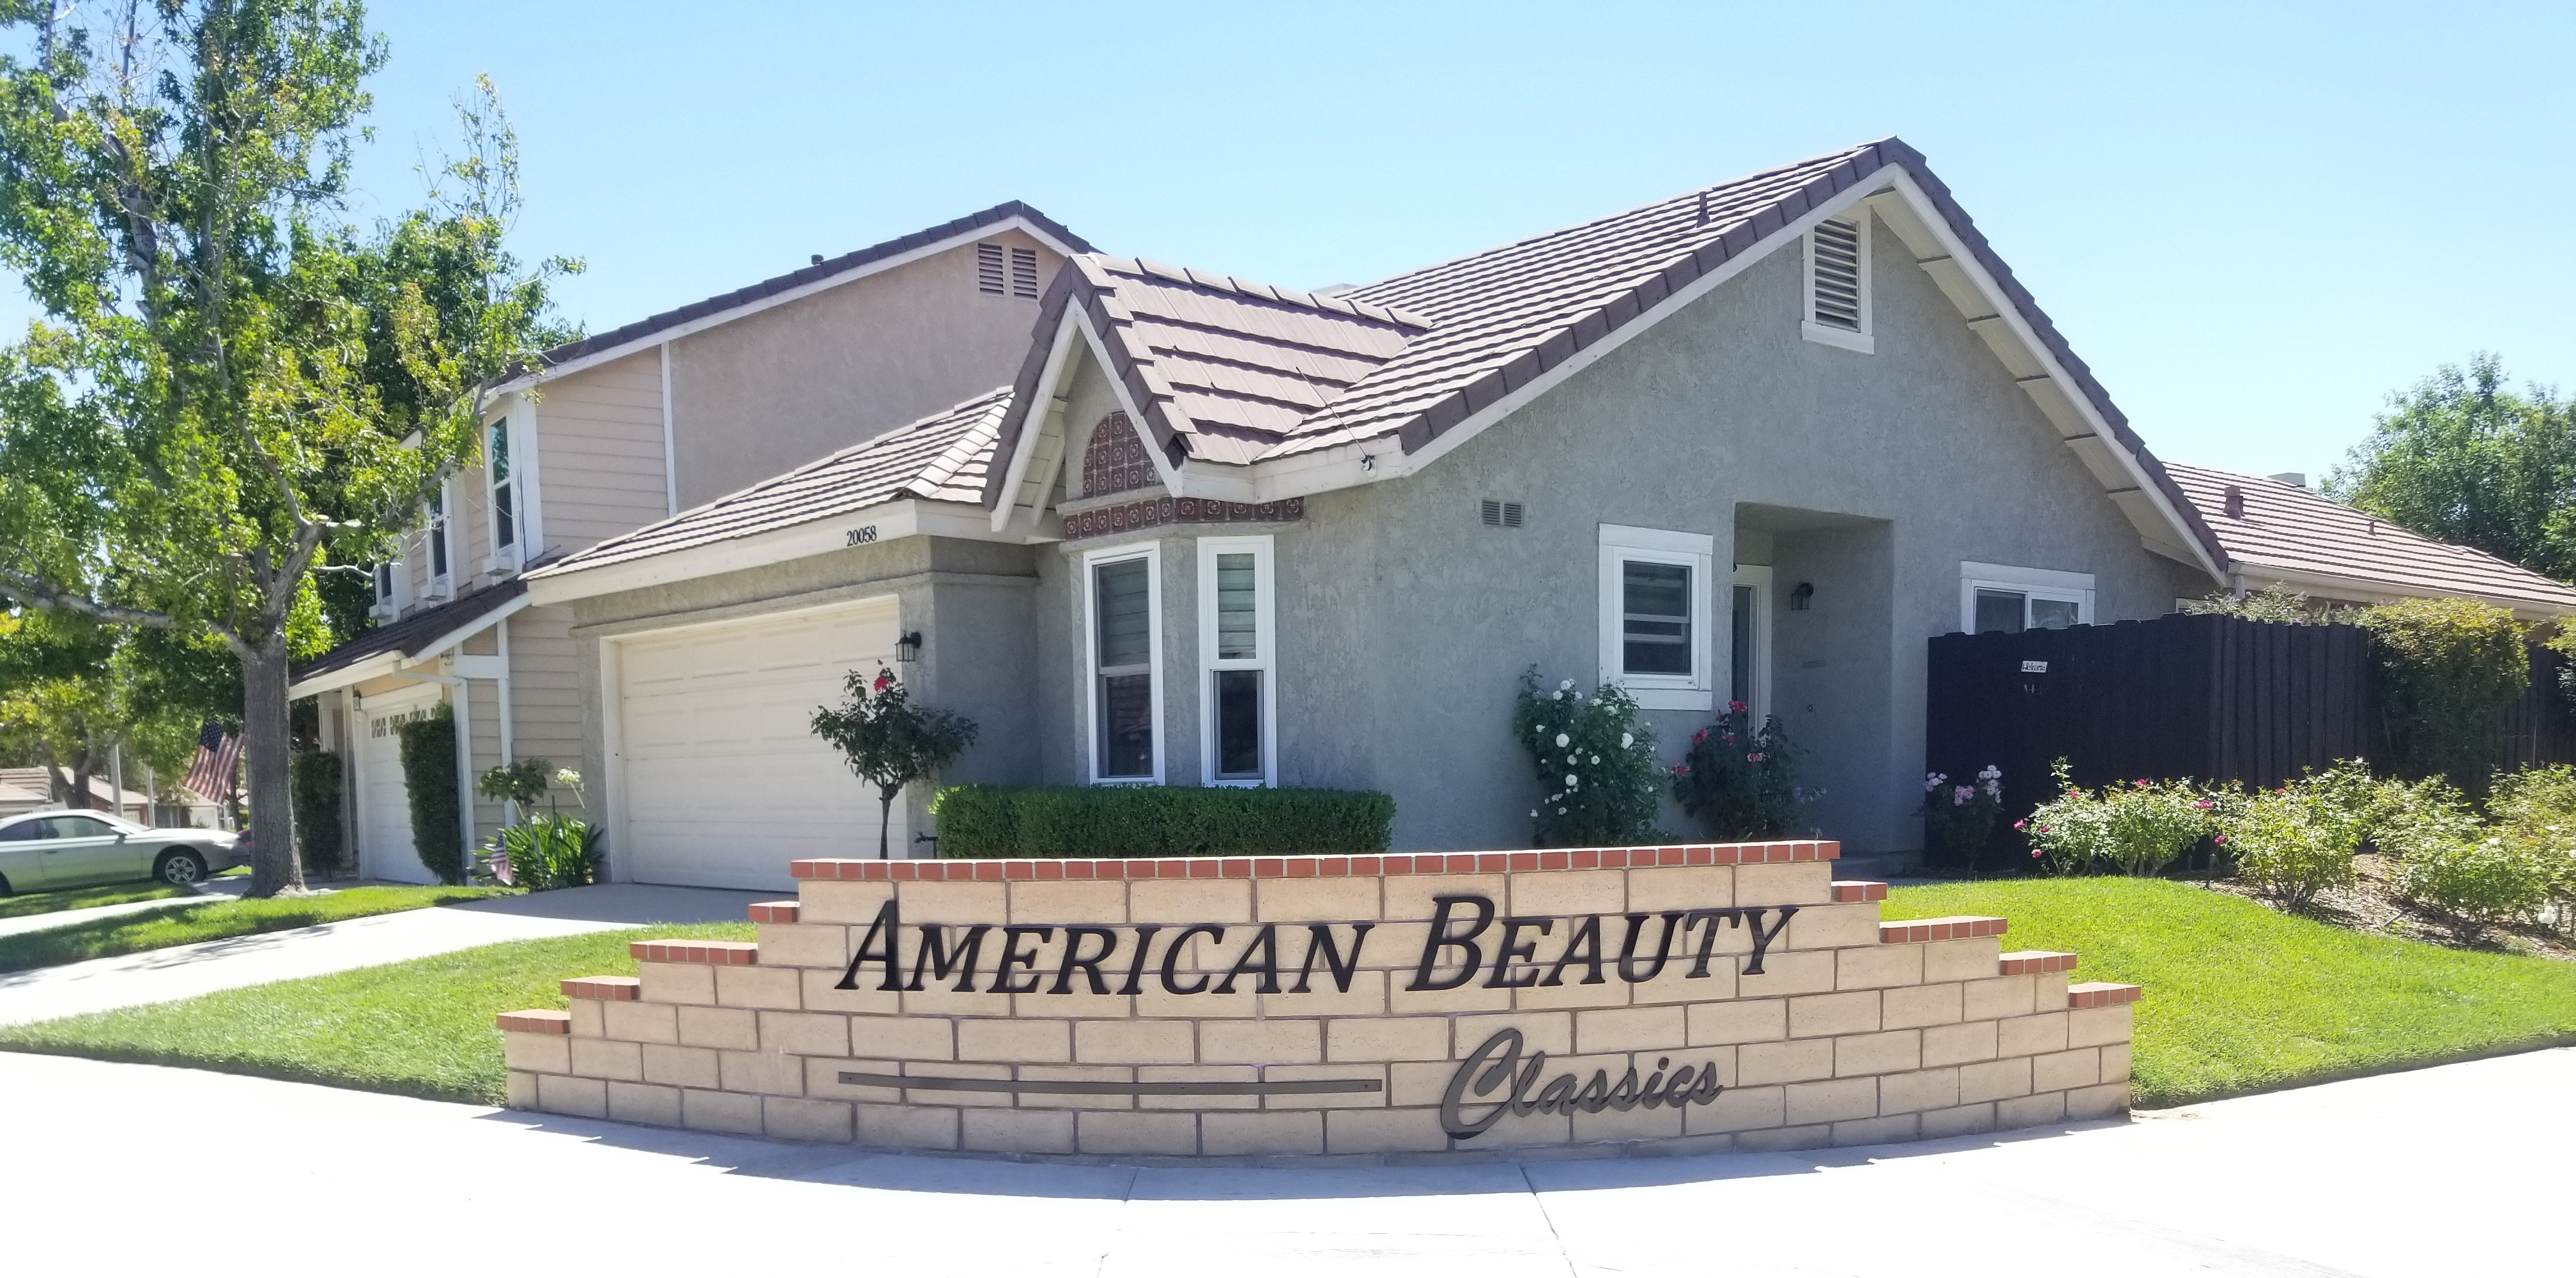 These are the extra streetside dimensional letters we made for American Beauty Classics in Canyon Country.